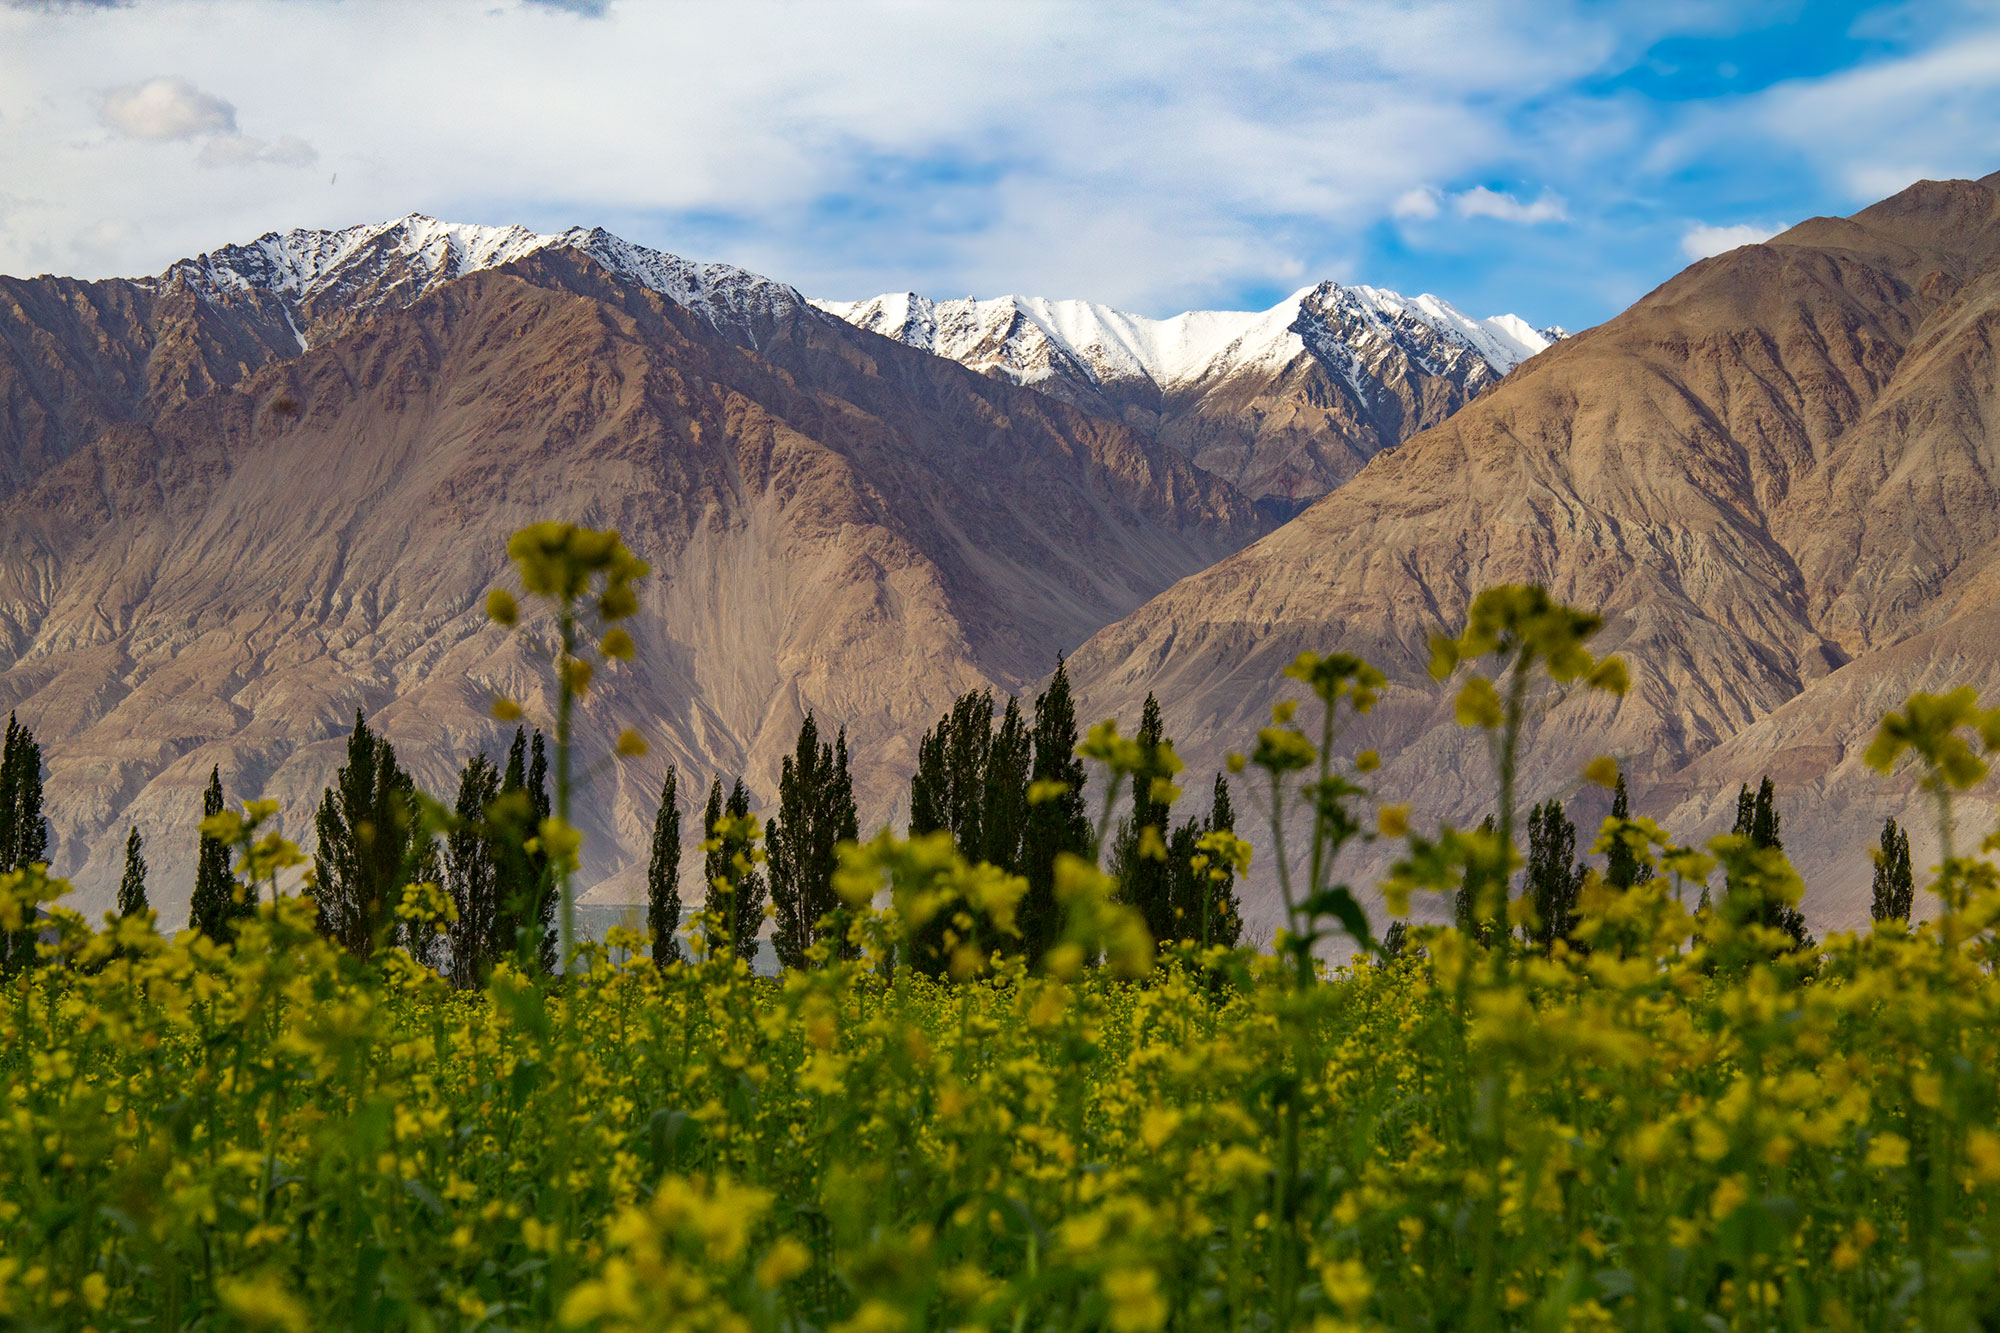 Snow caps surrounding Nubra Valley